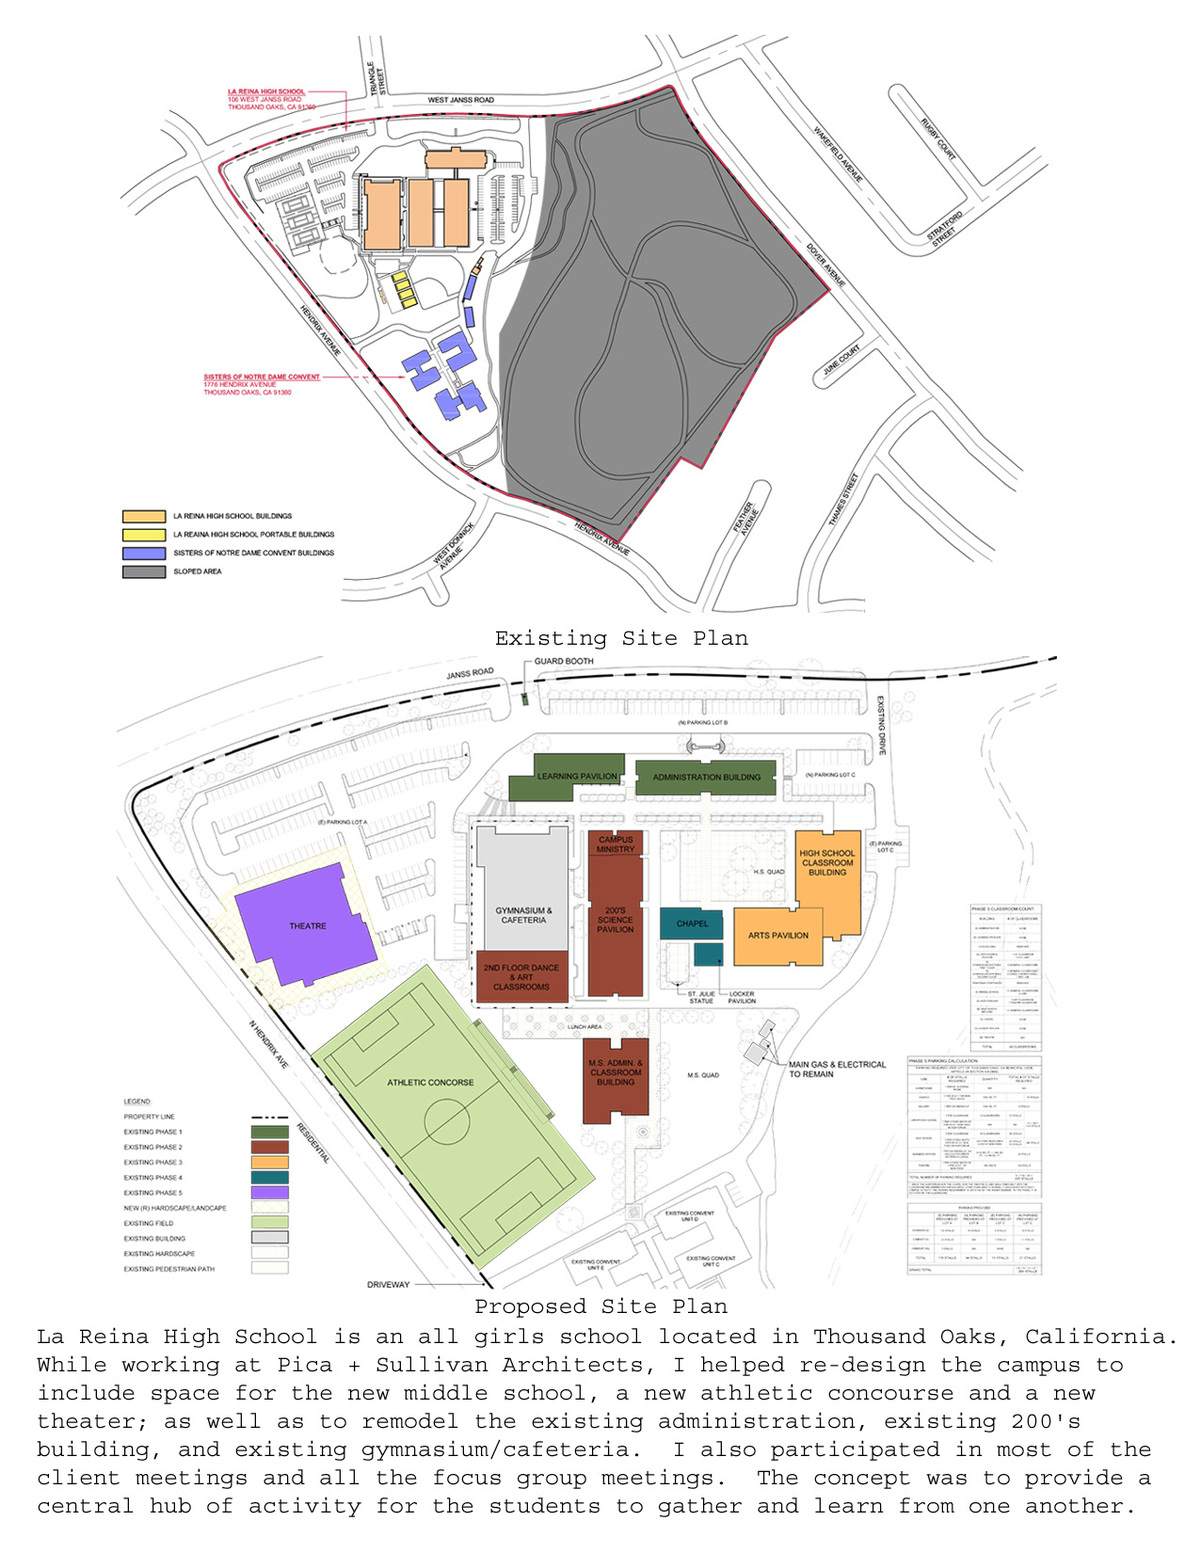 Existing site plan and proposed site plan